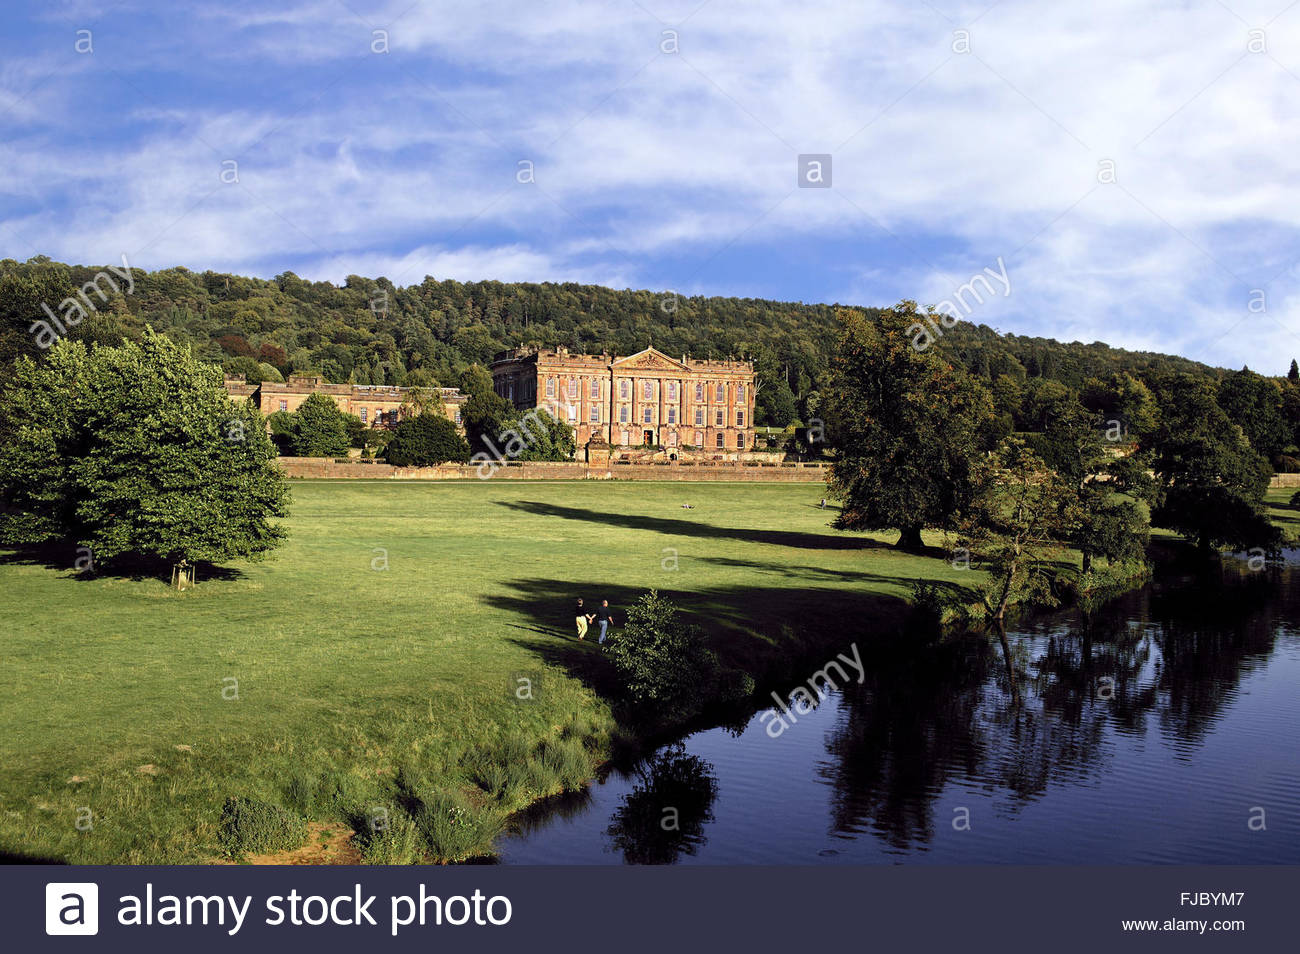 Chatsworth House Derbyshire Peak District - Stock Image